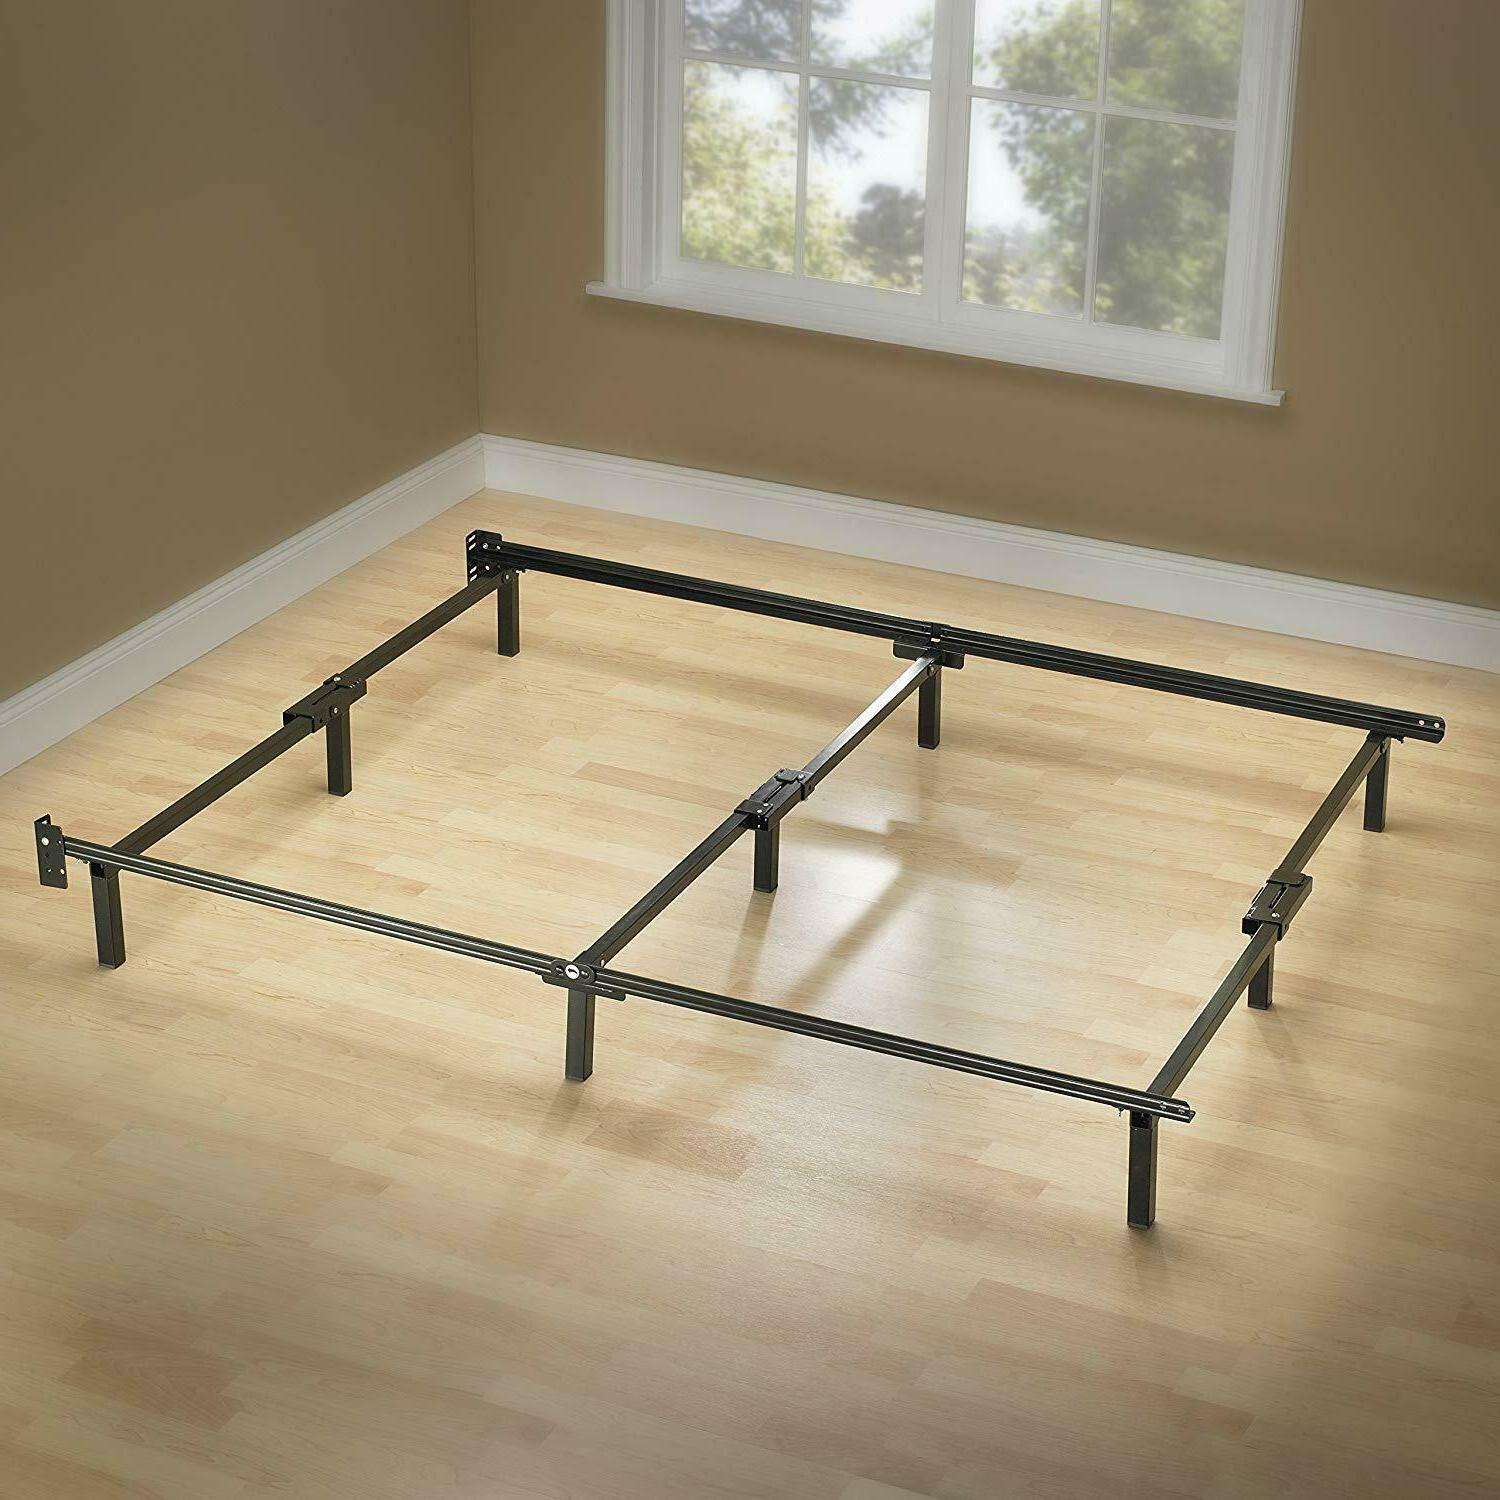 9-Leg Support Bed Frame, for Box Spring and Mattress Set,Ste